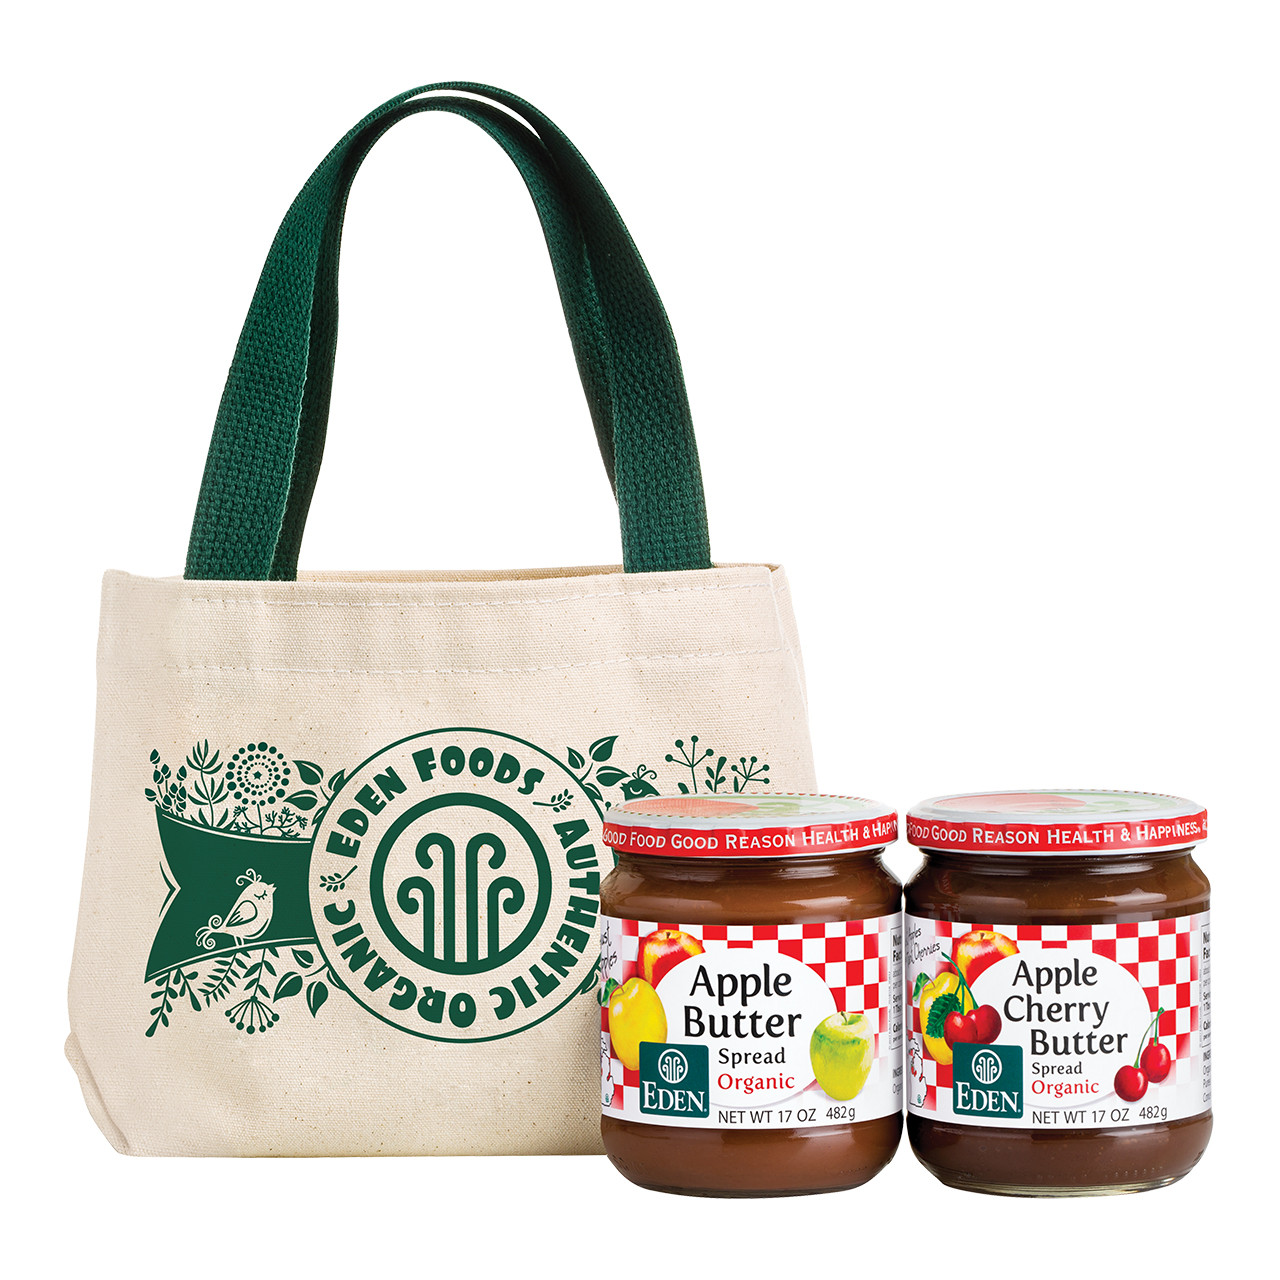 Apple Butter Tote